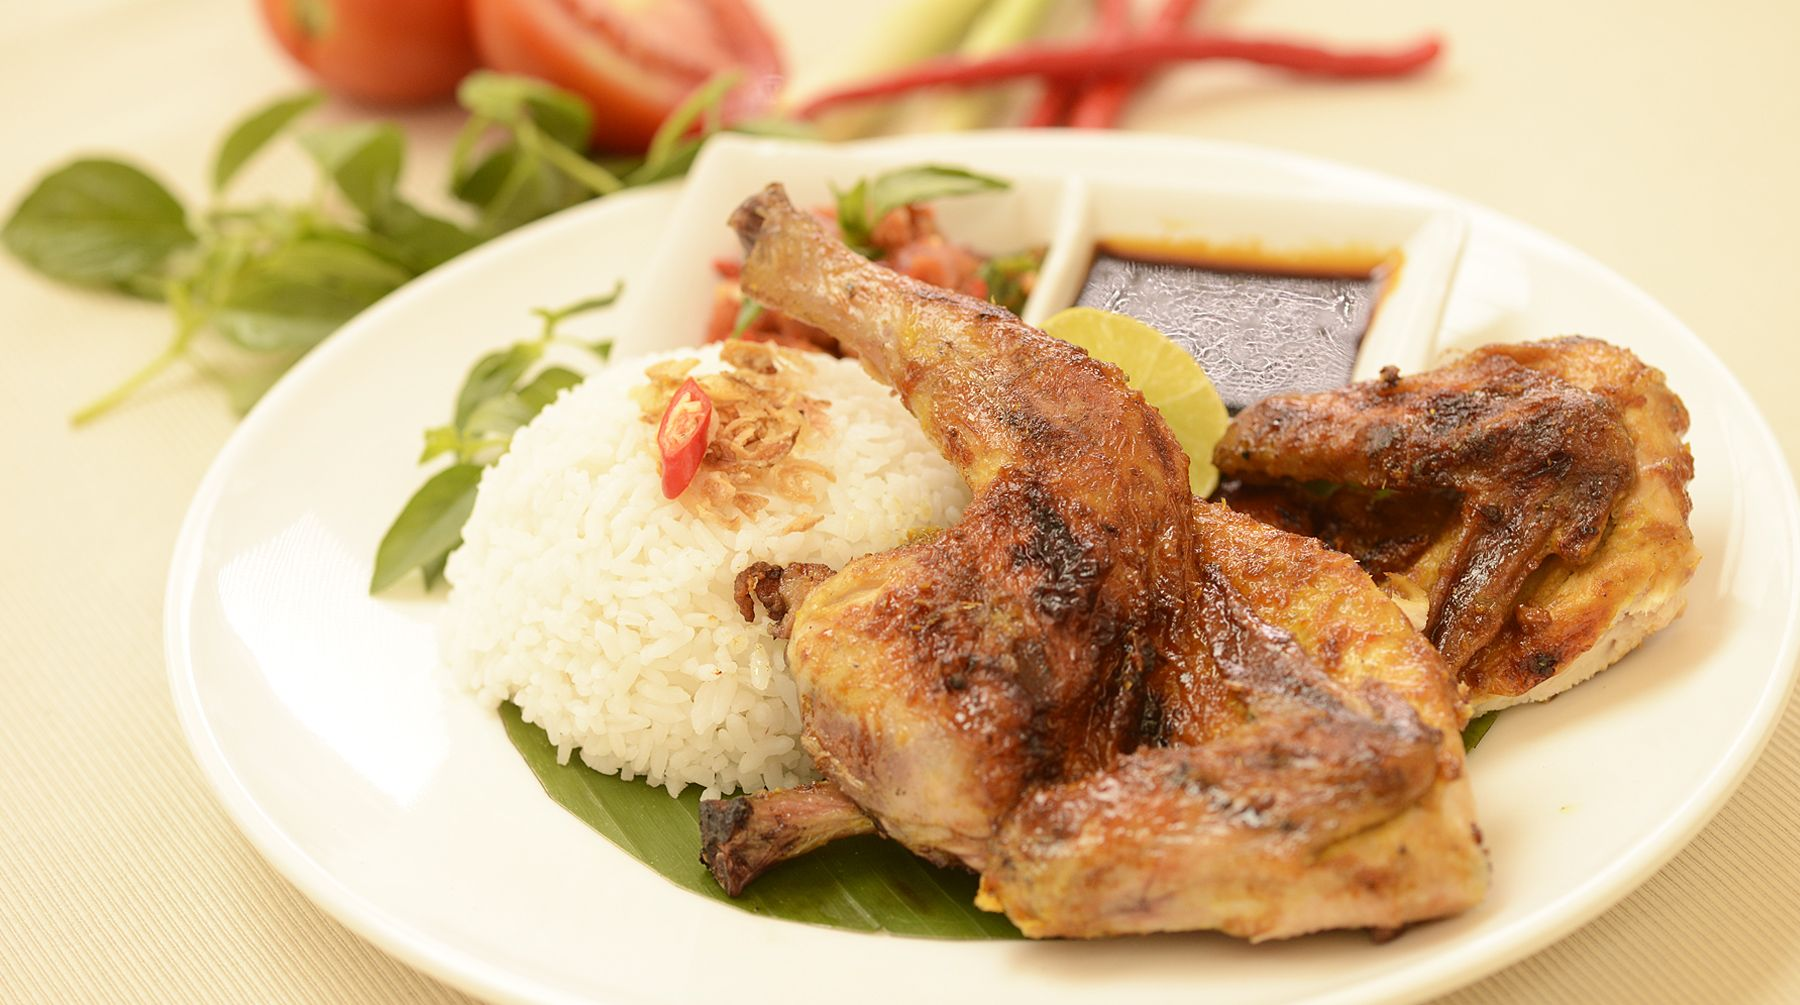 Roasted whole chicken wonderful indonesia flavours recipes ayam roasted whole chicken wonderful indonesia flavours recipes ayam bumbu gurih asian food channel forumfinder Image collections